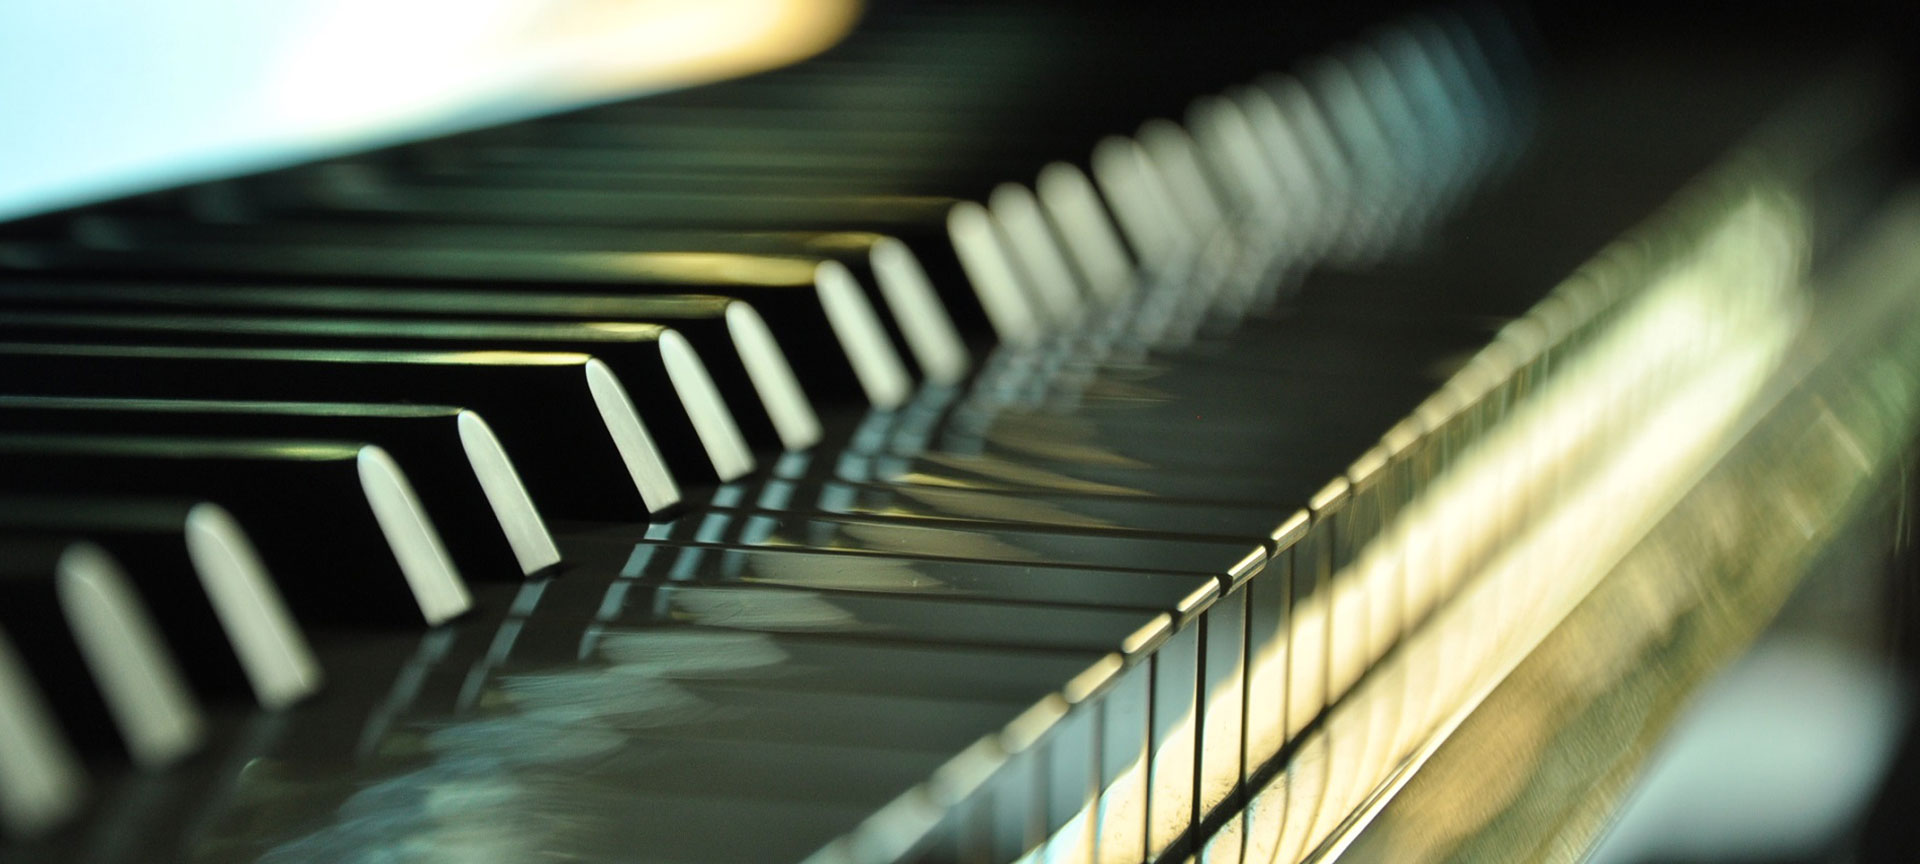 upright piano keys image